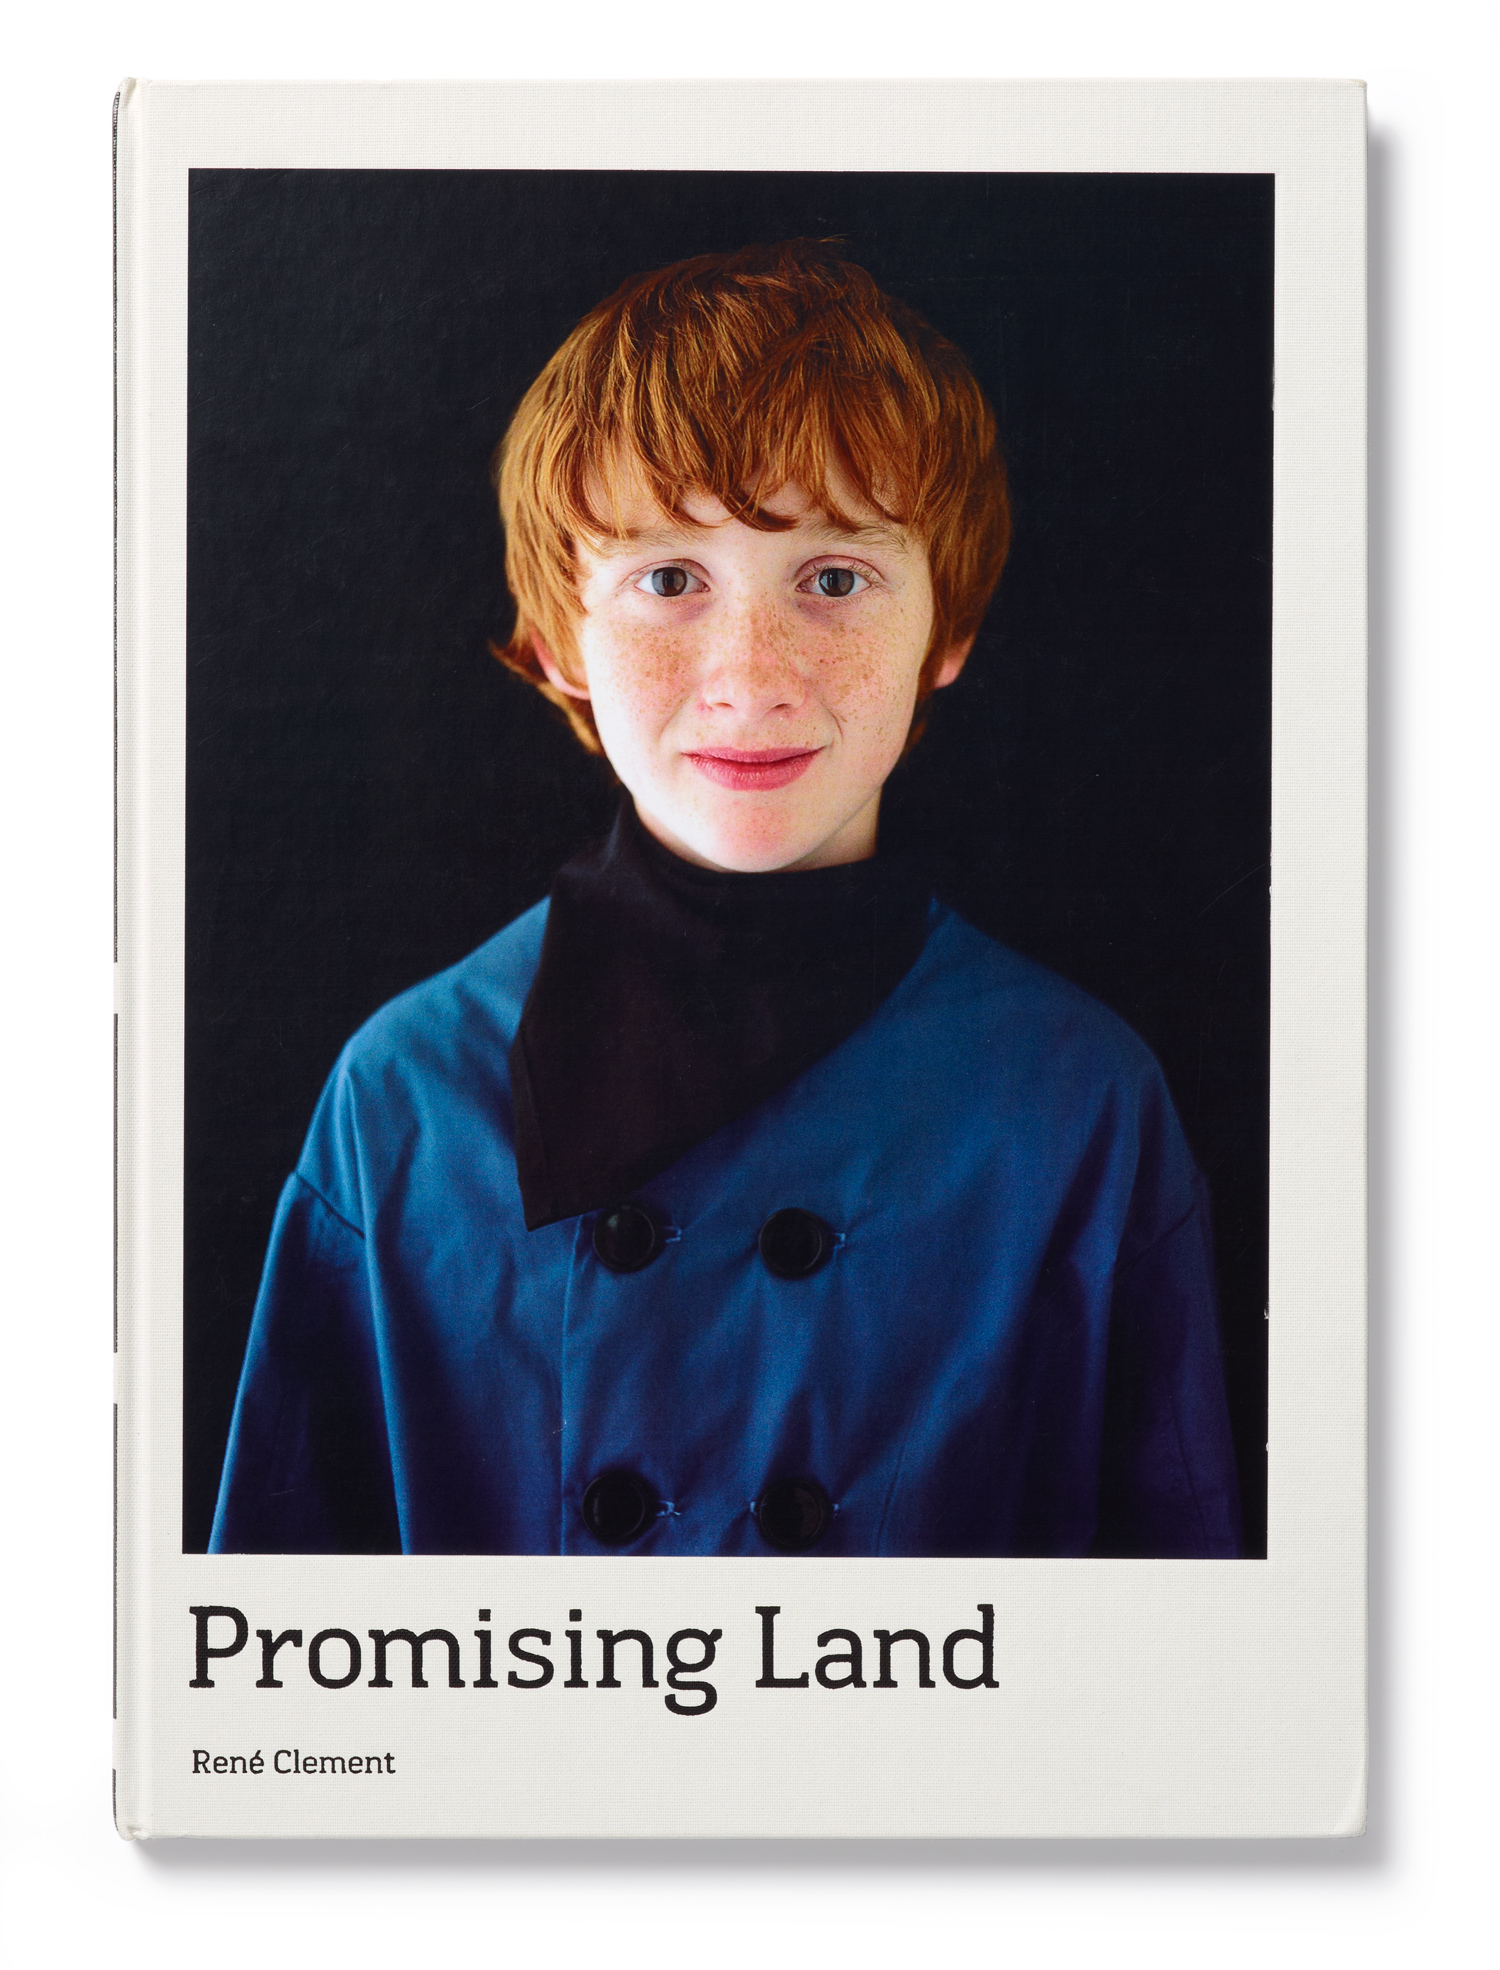 Cover of Promising Land a book by Rene Clement documenting Orange City, Iowa and its Dutch roots.